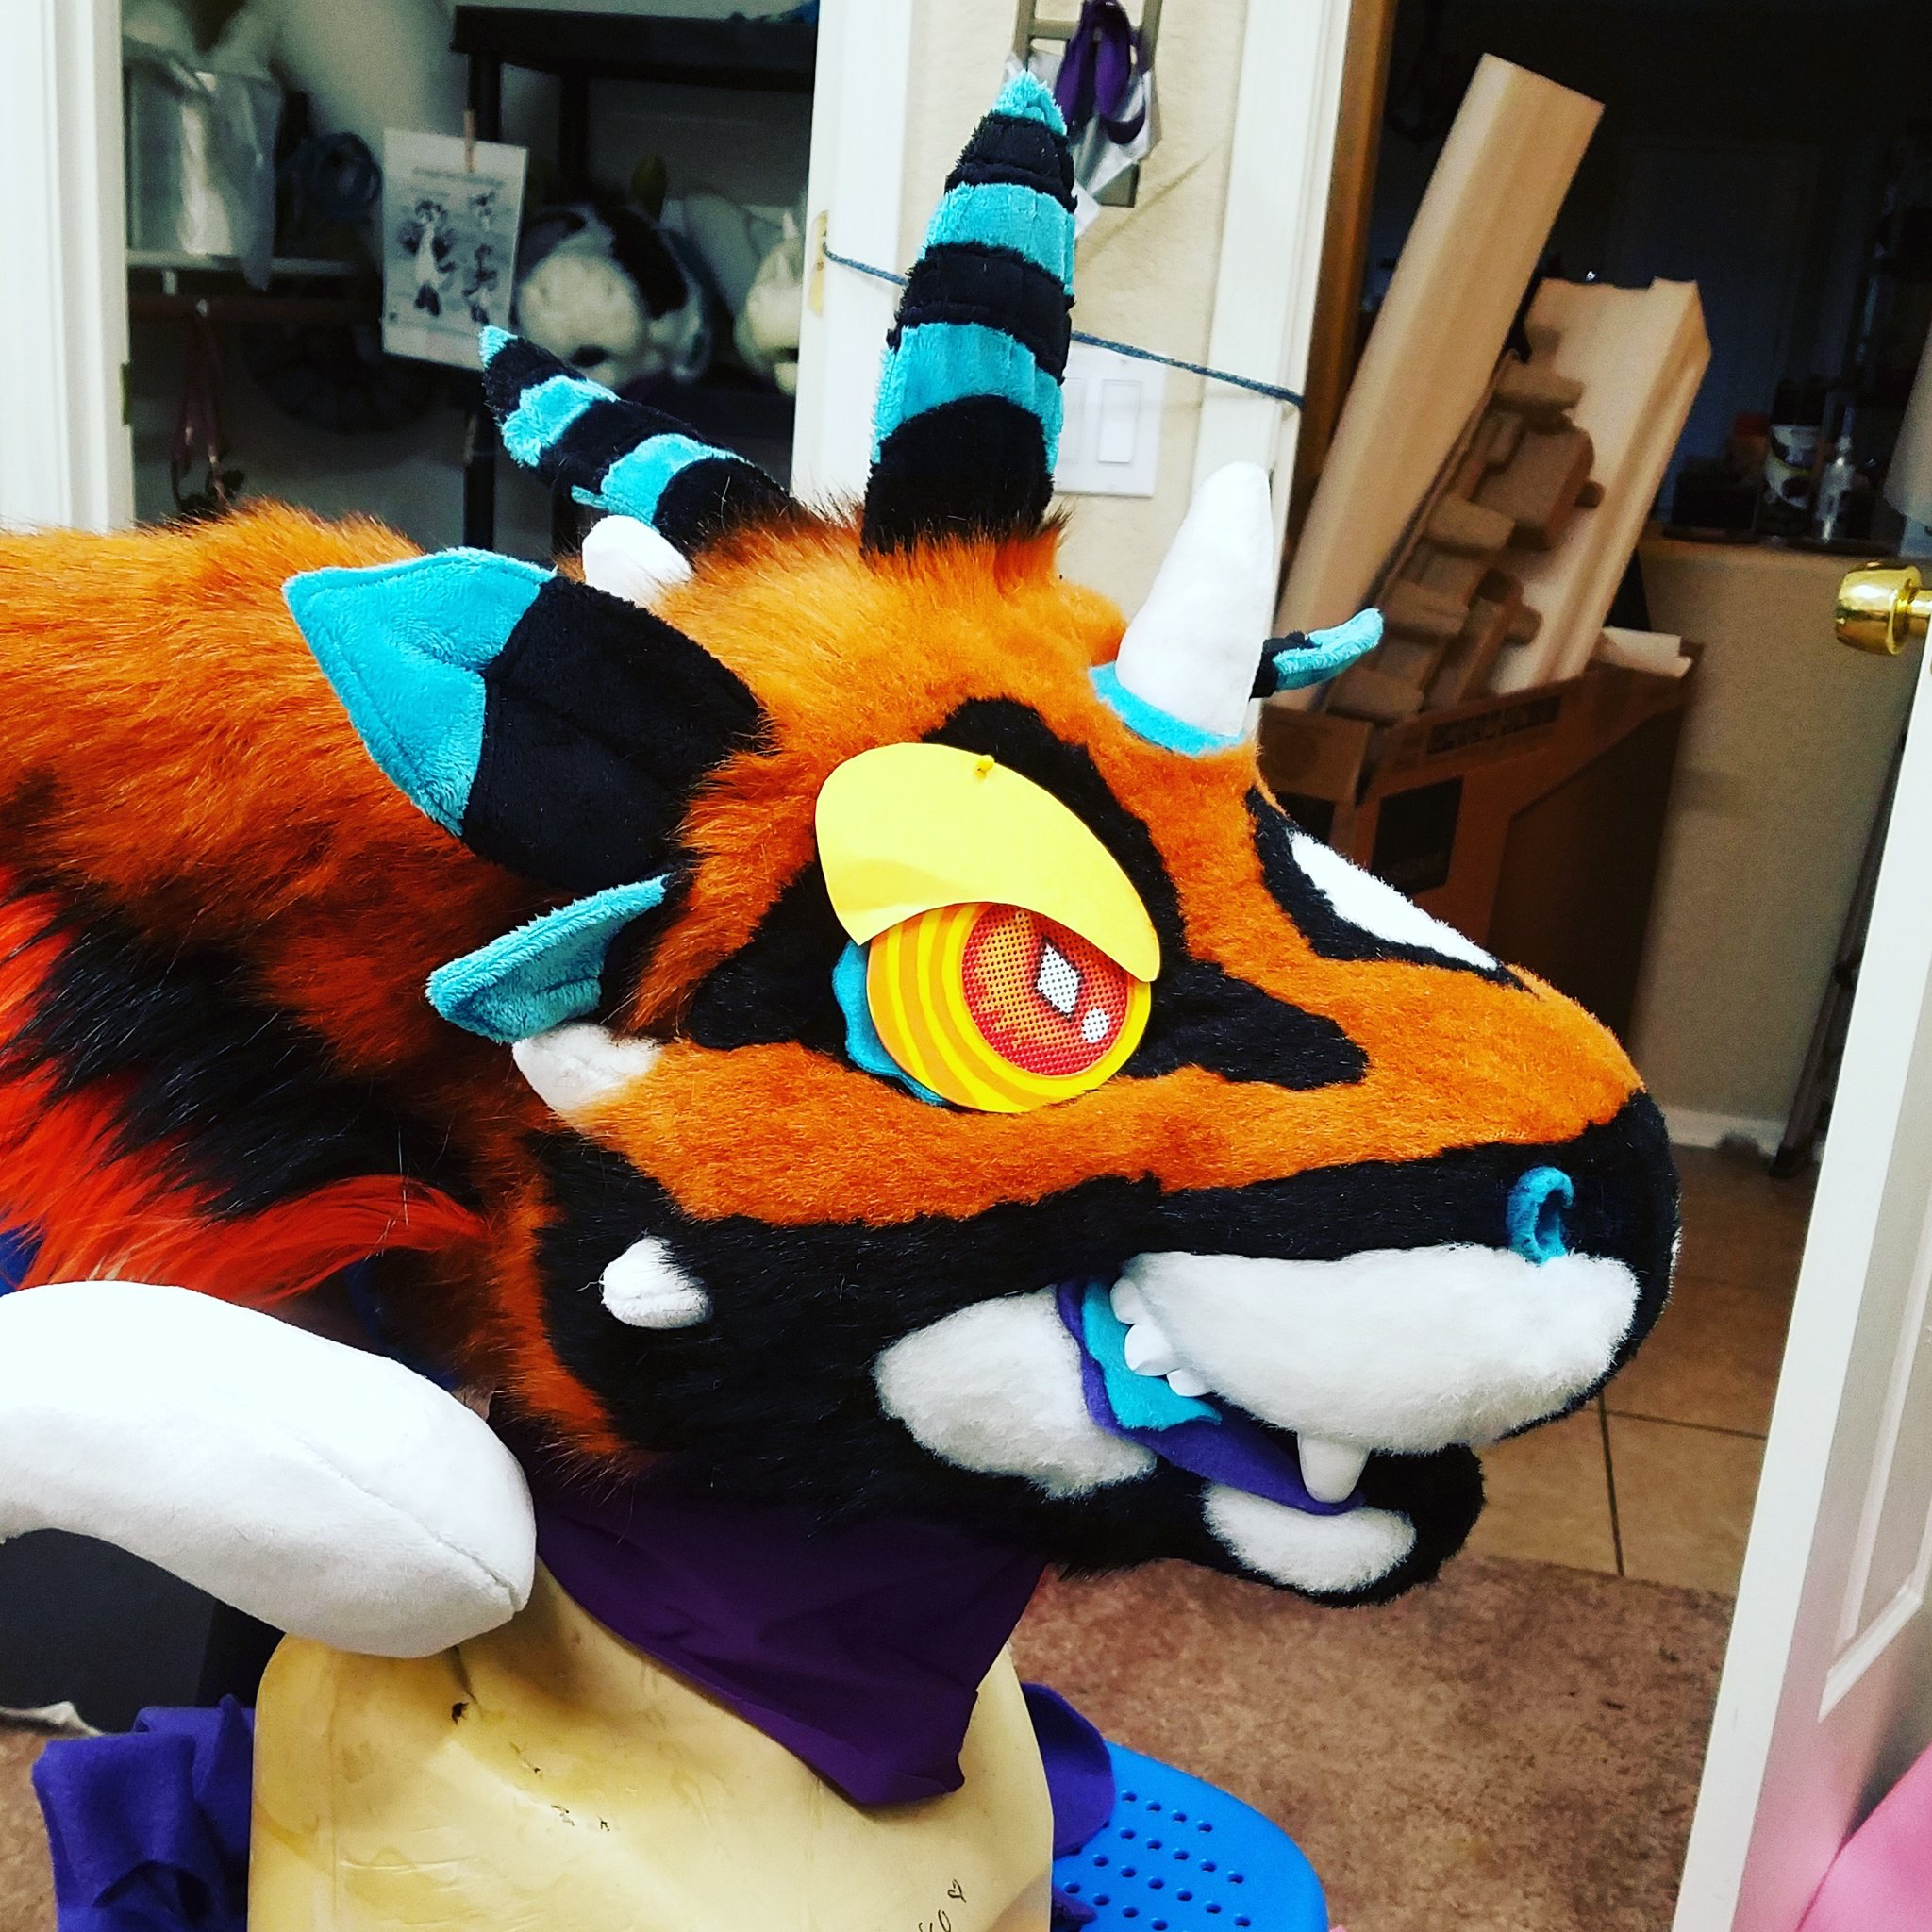 e2bae317a My fursuit head. This Dutch Angel Dragon is stunning! Look at those colours!